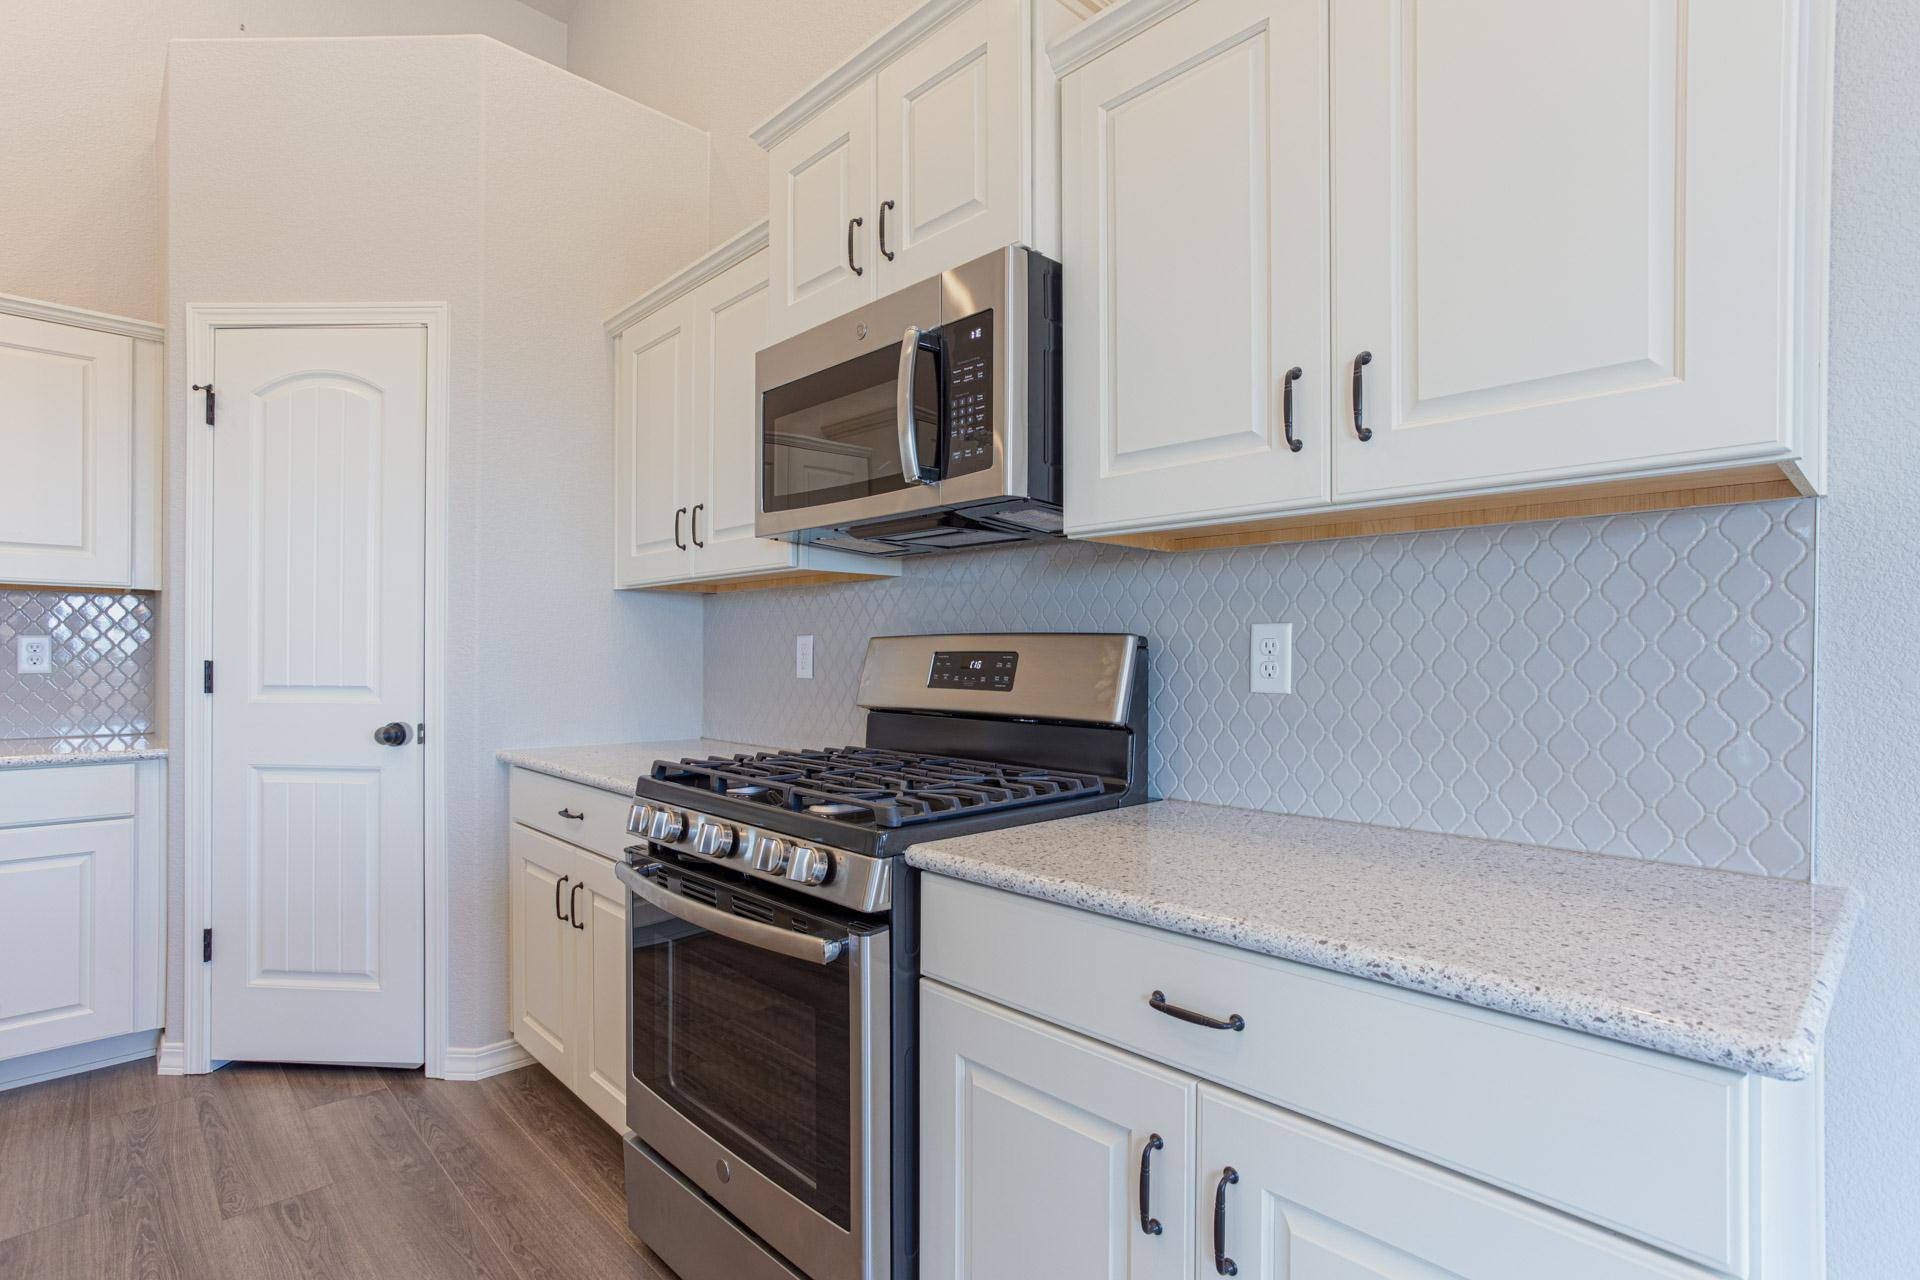 Kitchen featured in the Savannah By Challenger Homes in Colorado Springs, CO